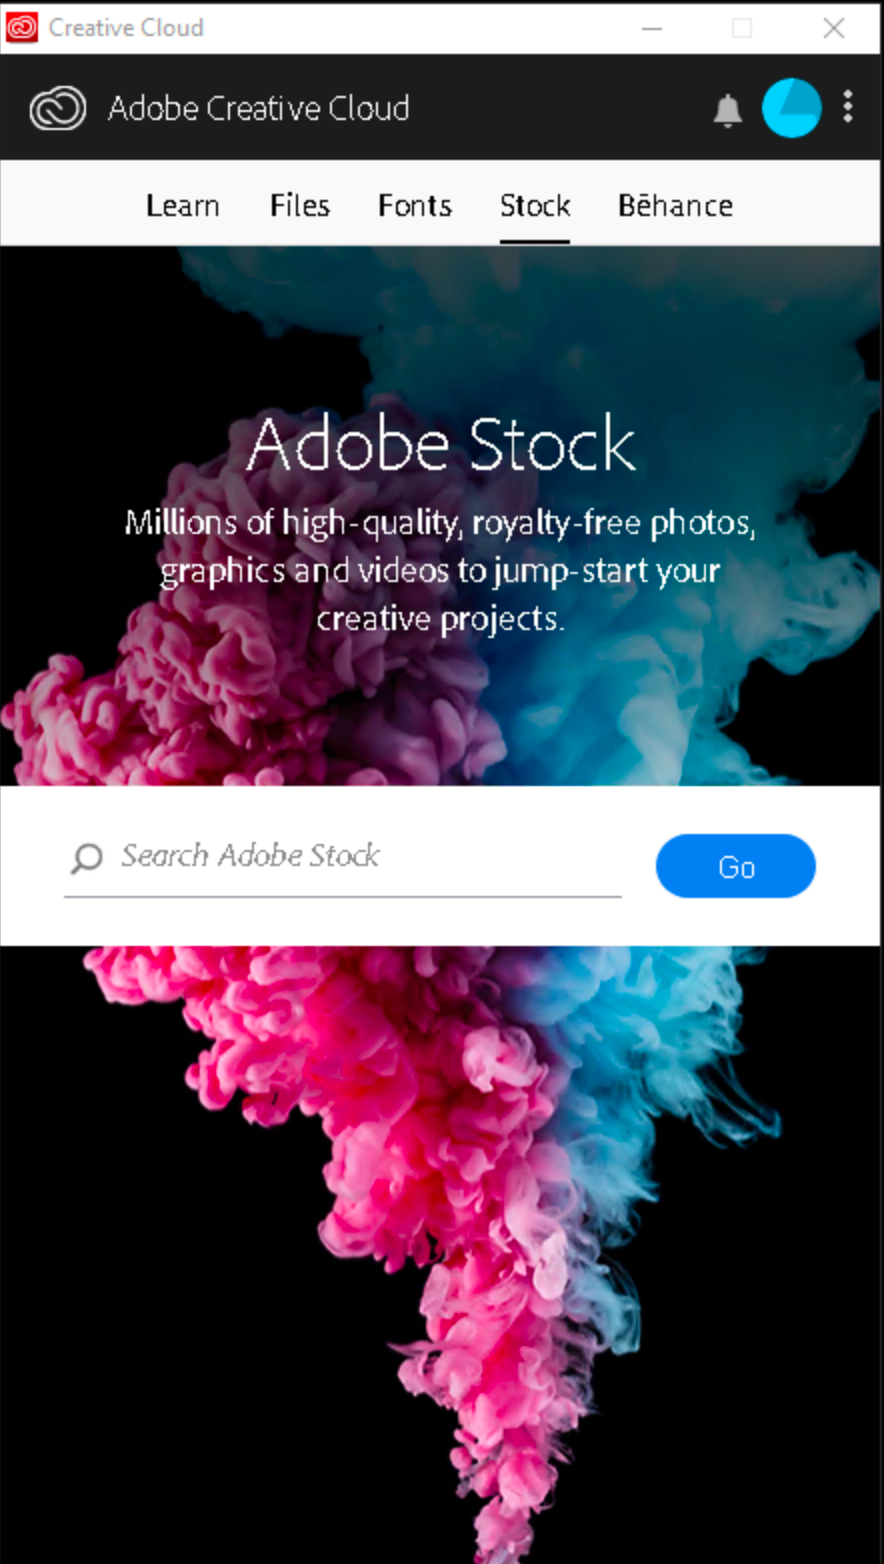 Authenticated view of Adobe CC desktop app